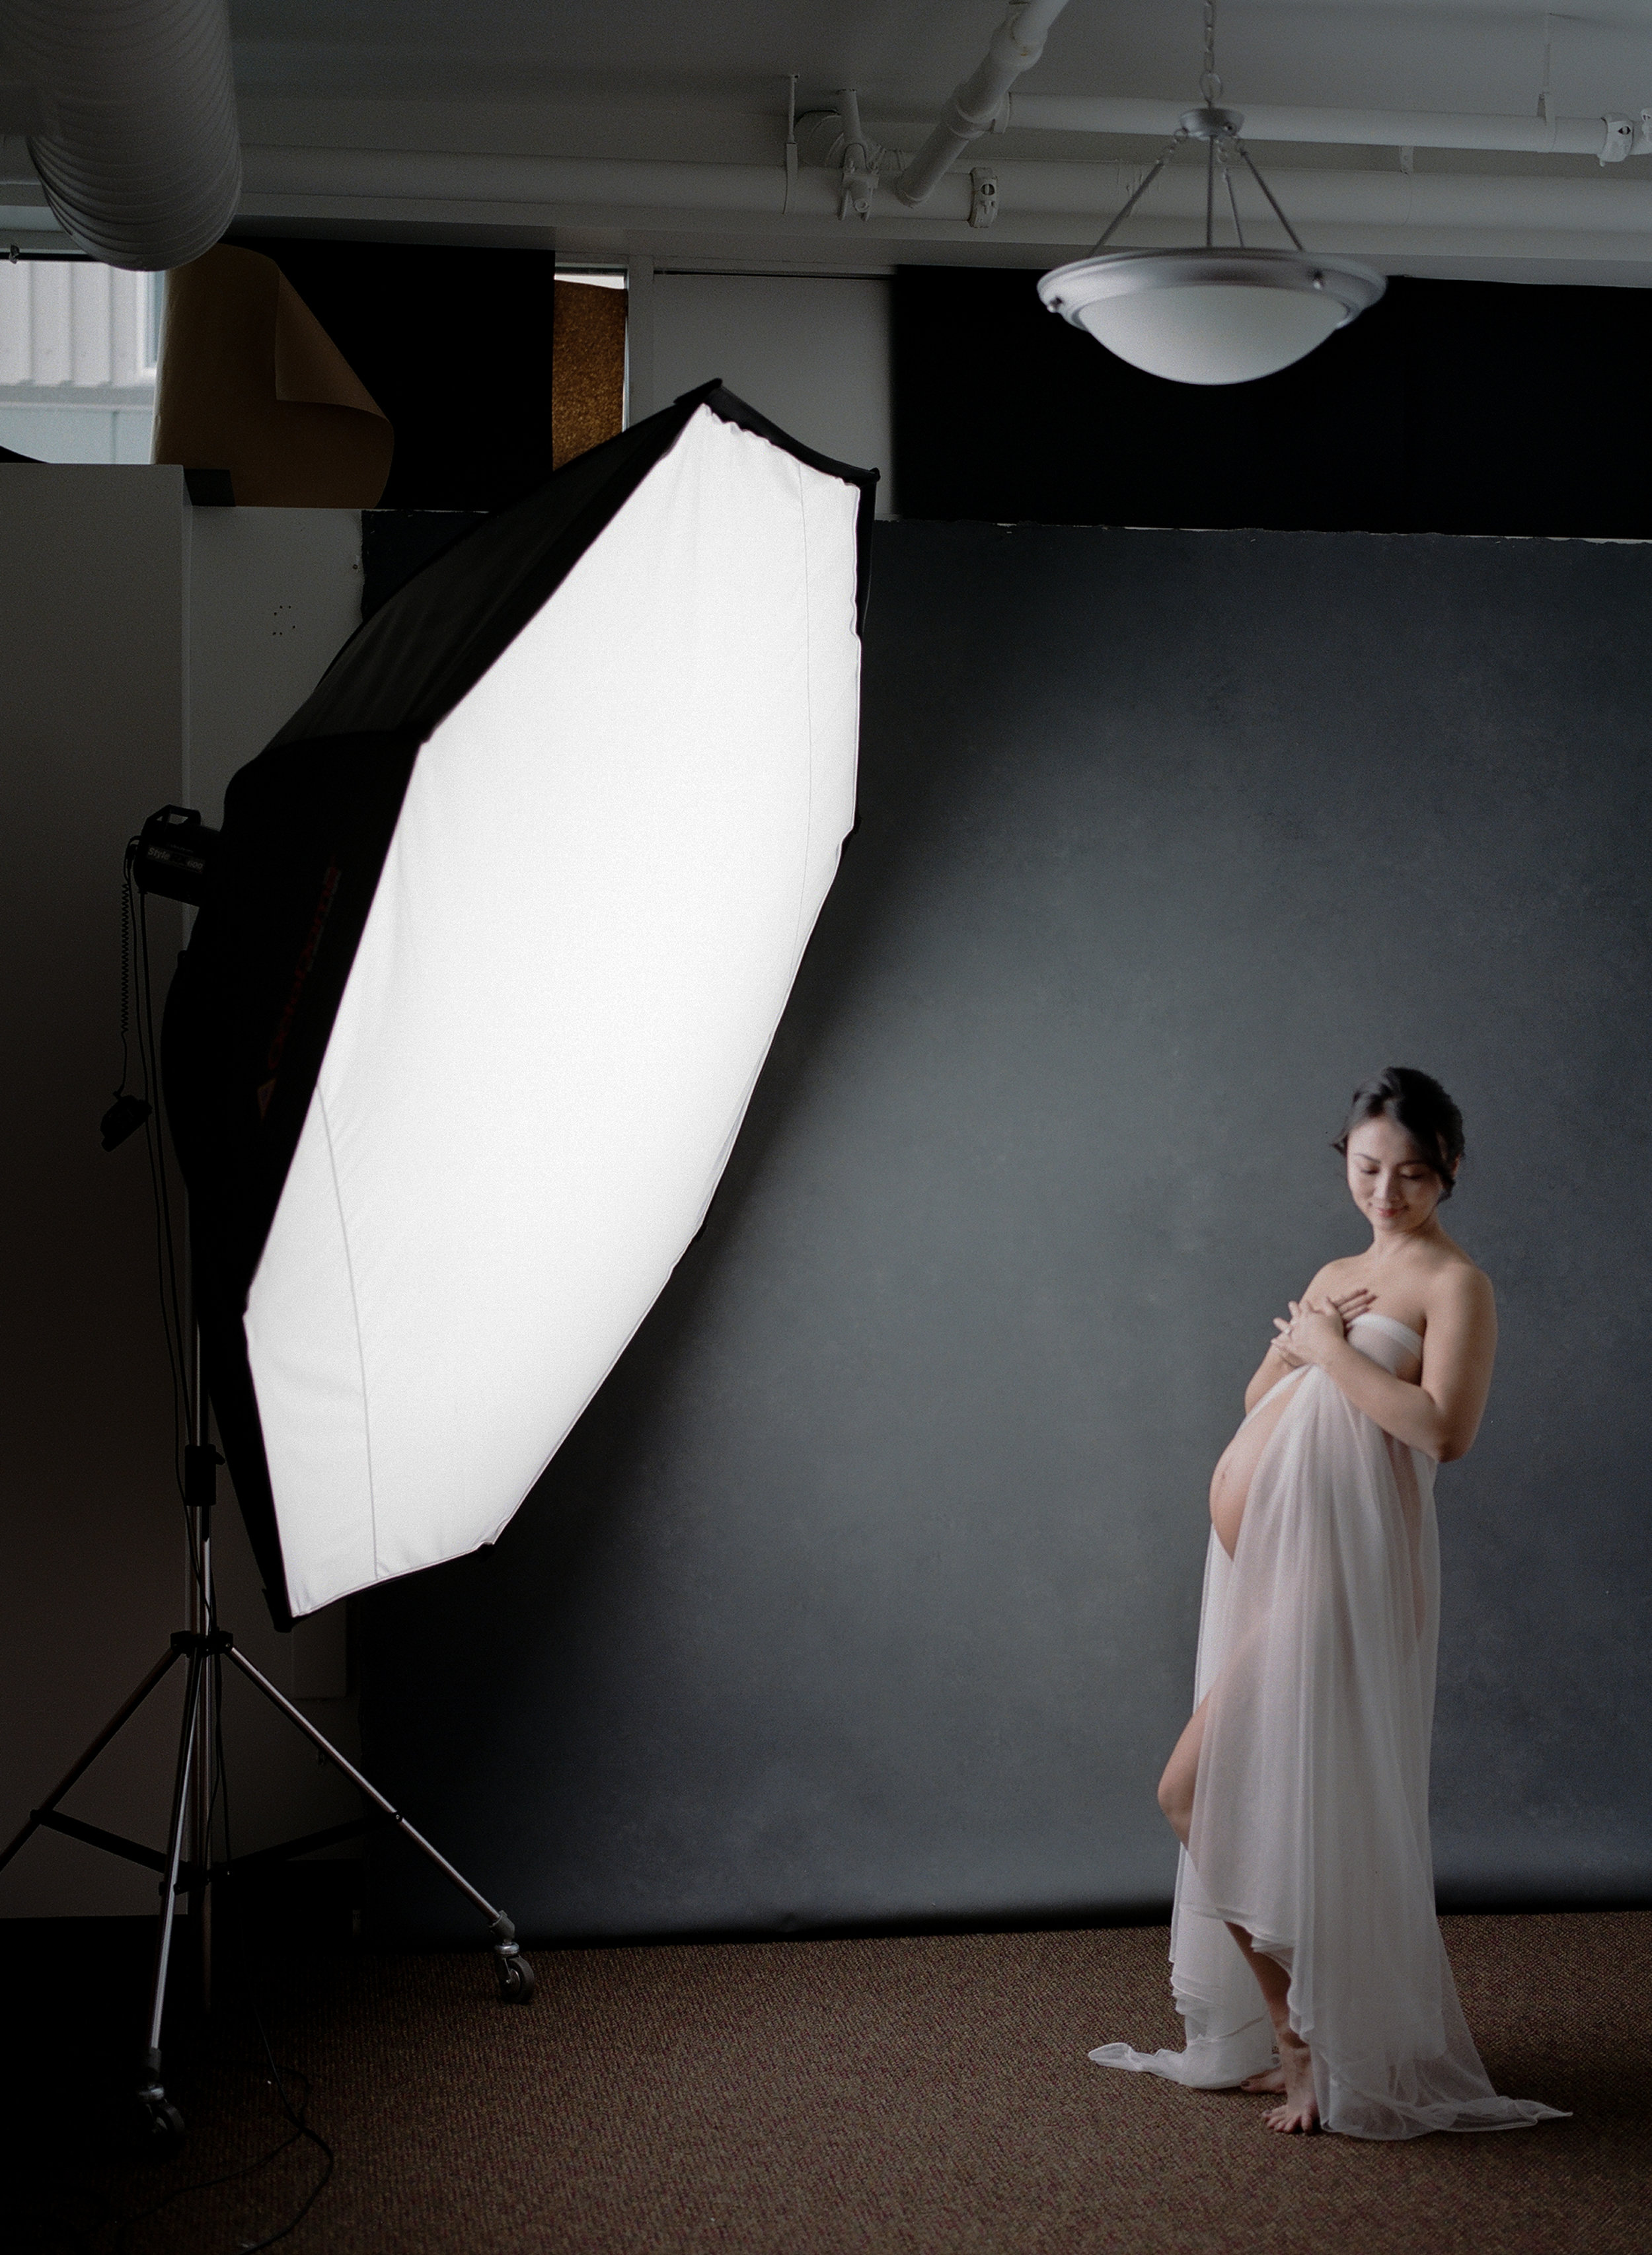 Behind the scenes photo of the simple, one light studio lighting set up that helped me build a six figure photography business